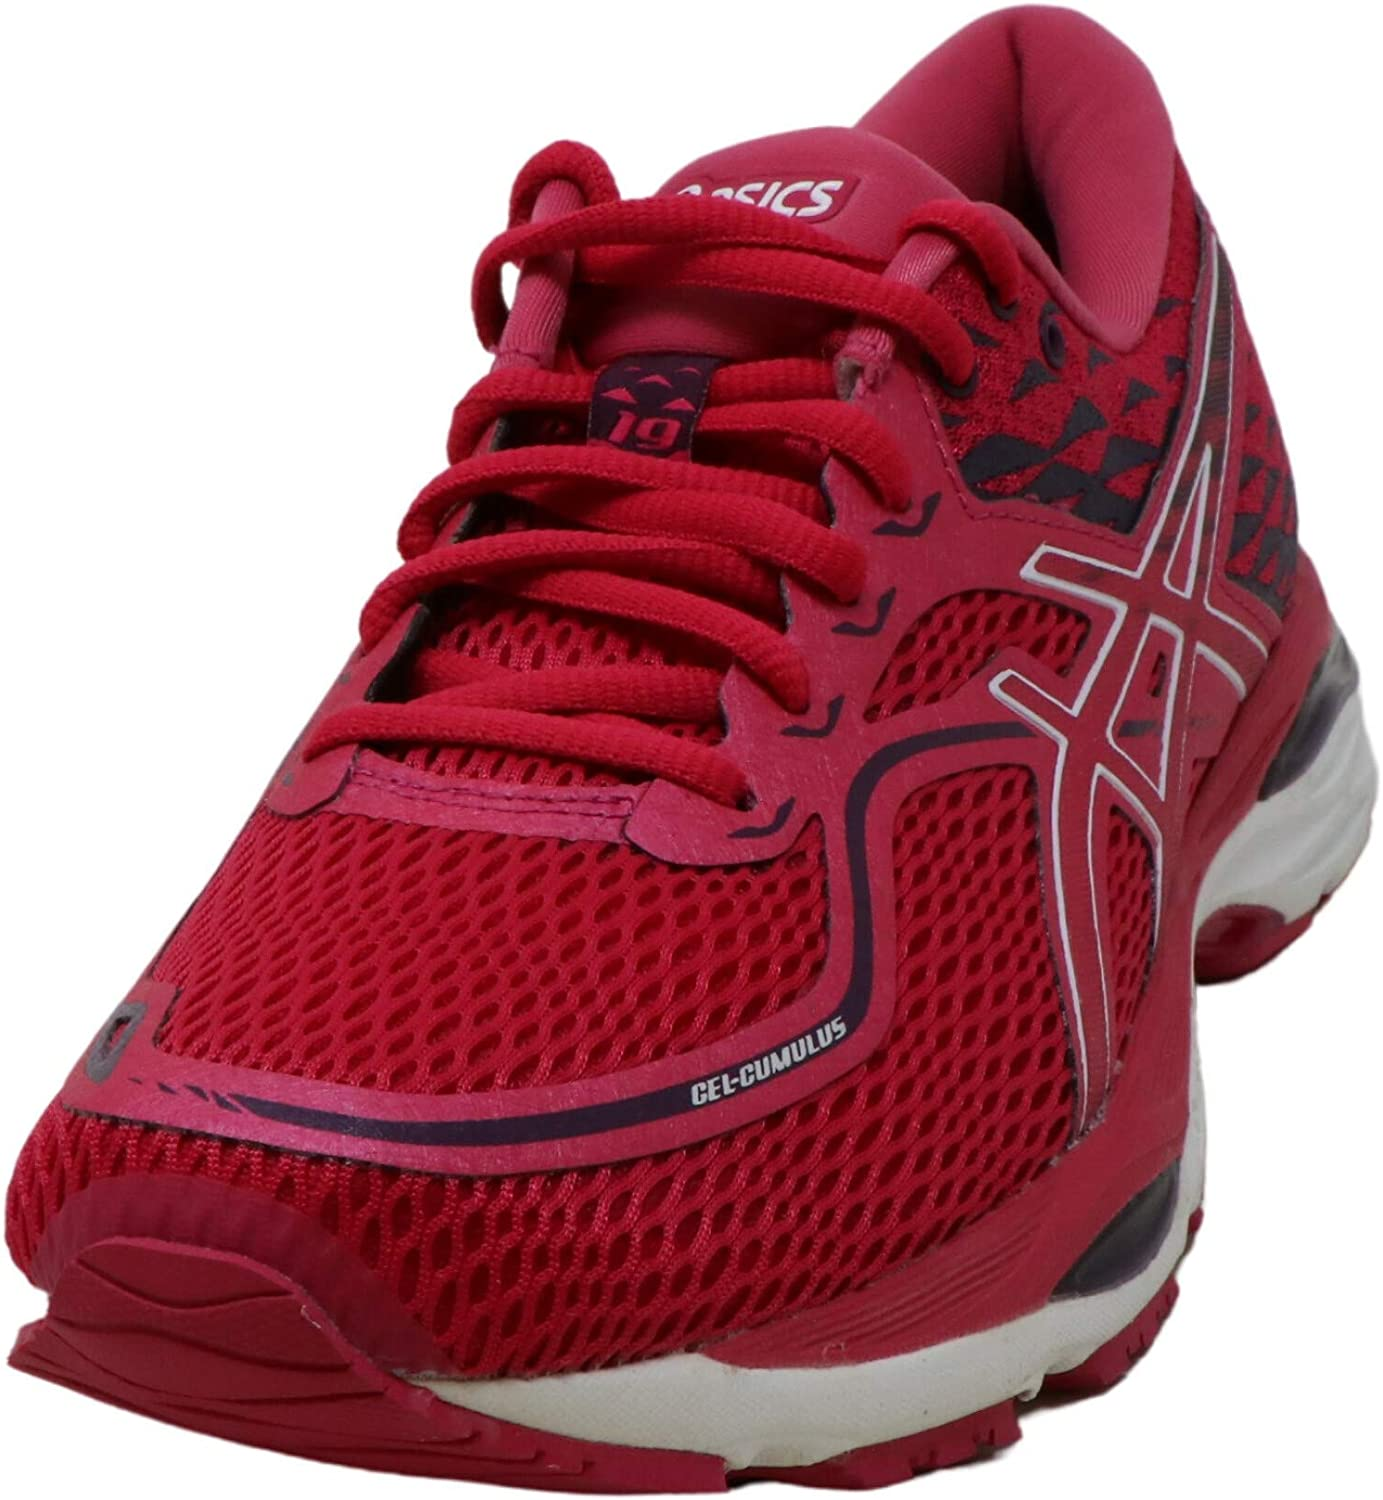 ASICS Gel-Cumulus 19 - Zapatillas de running para mujer, Rosa (Rosa/Blanco/Winter Bloom), 37.5 EU: Amazon.es: Deportes y aire libre